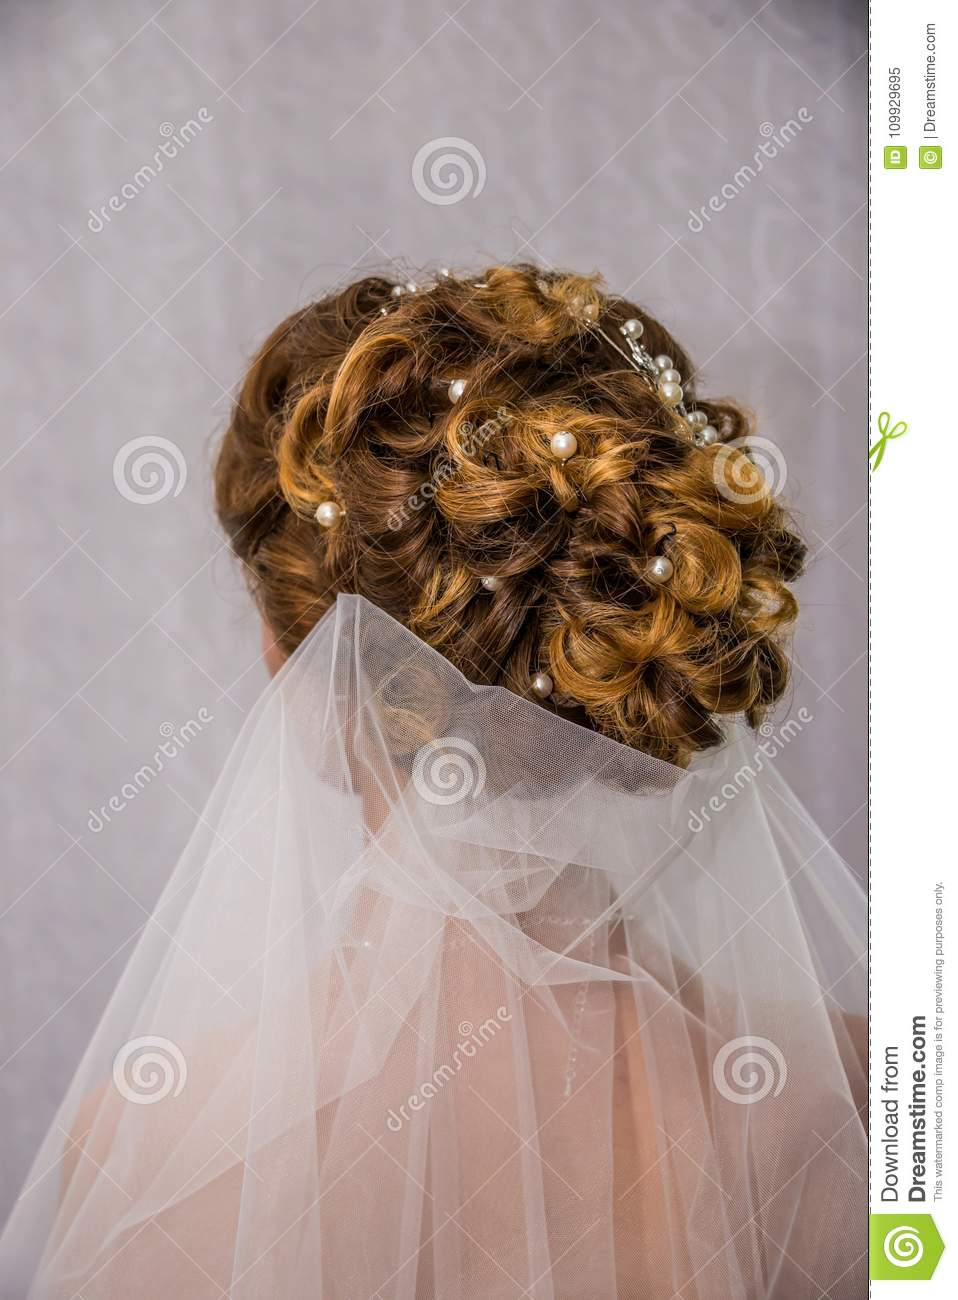 Bridesmaid Hairstyle Bride Hairstyle , Wedding Day, Girl Jewelry ...